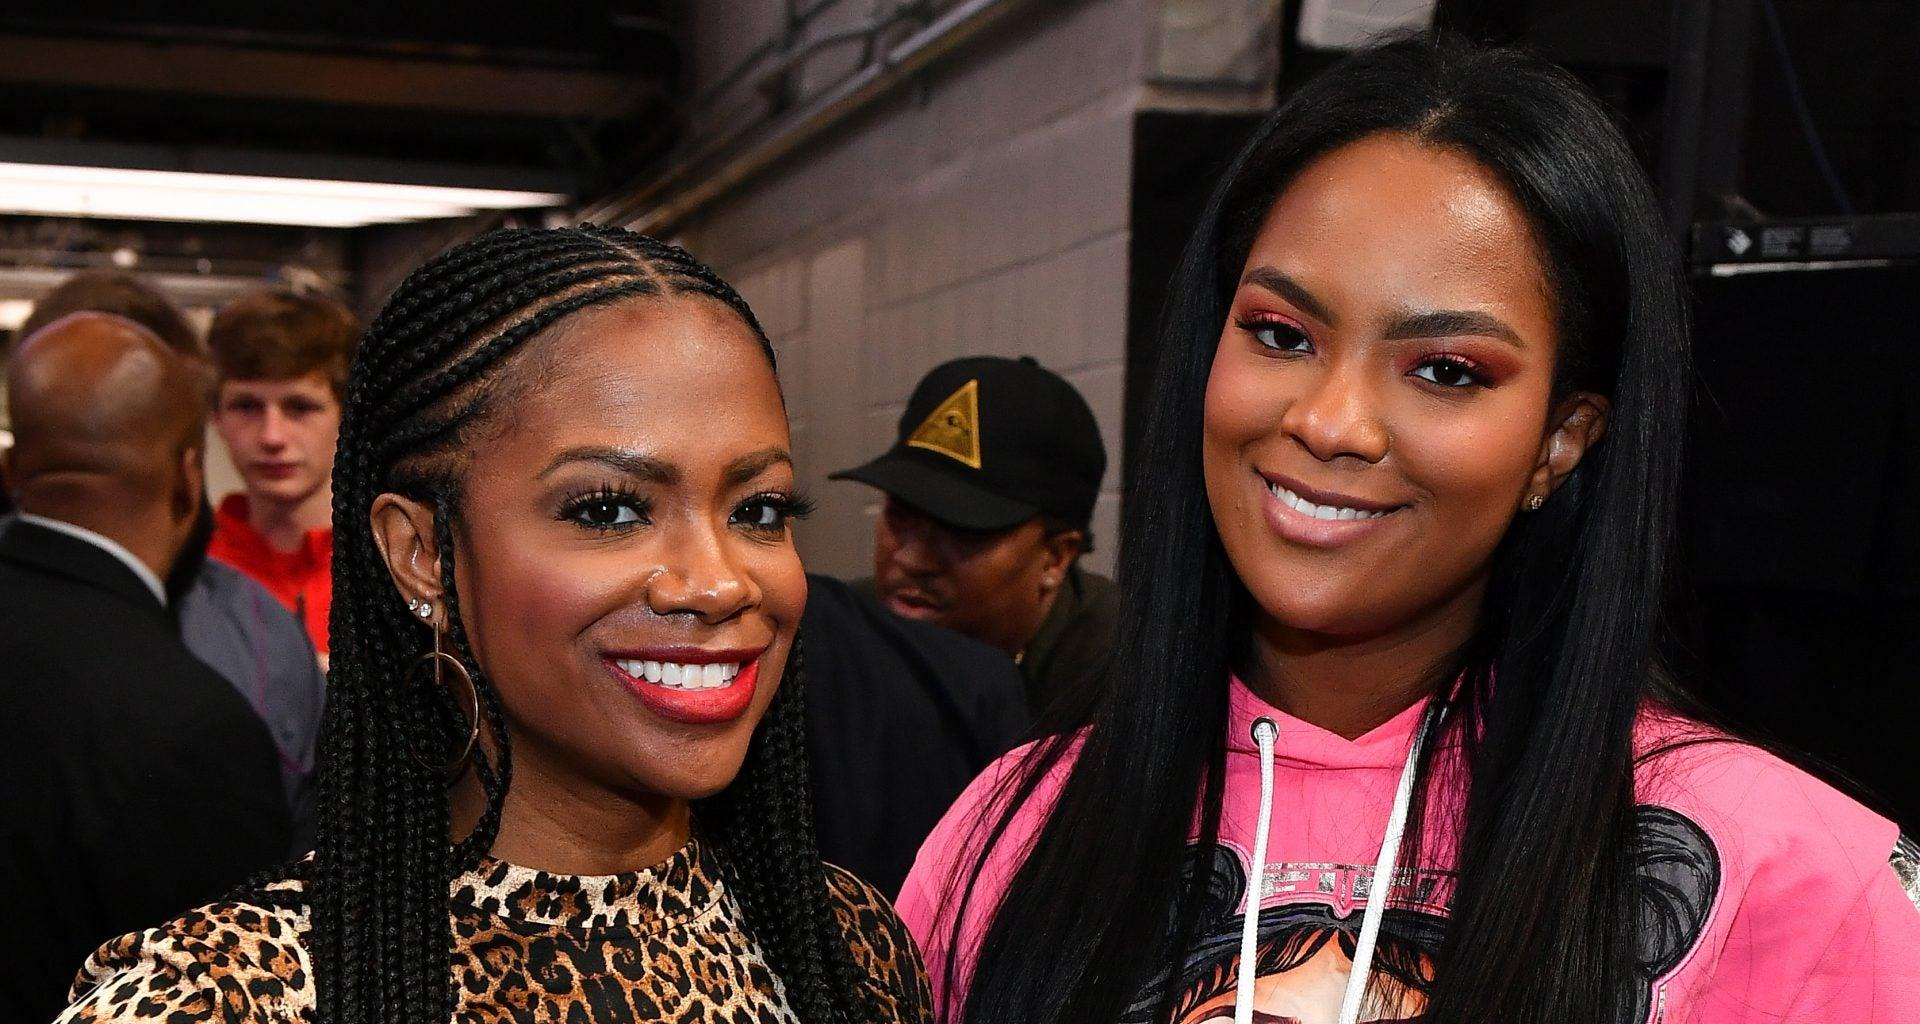 Kandi Burruss Pays Tribute To Daughter Riley As She Turns 18 And They Look Like Twins In New Pic!